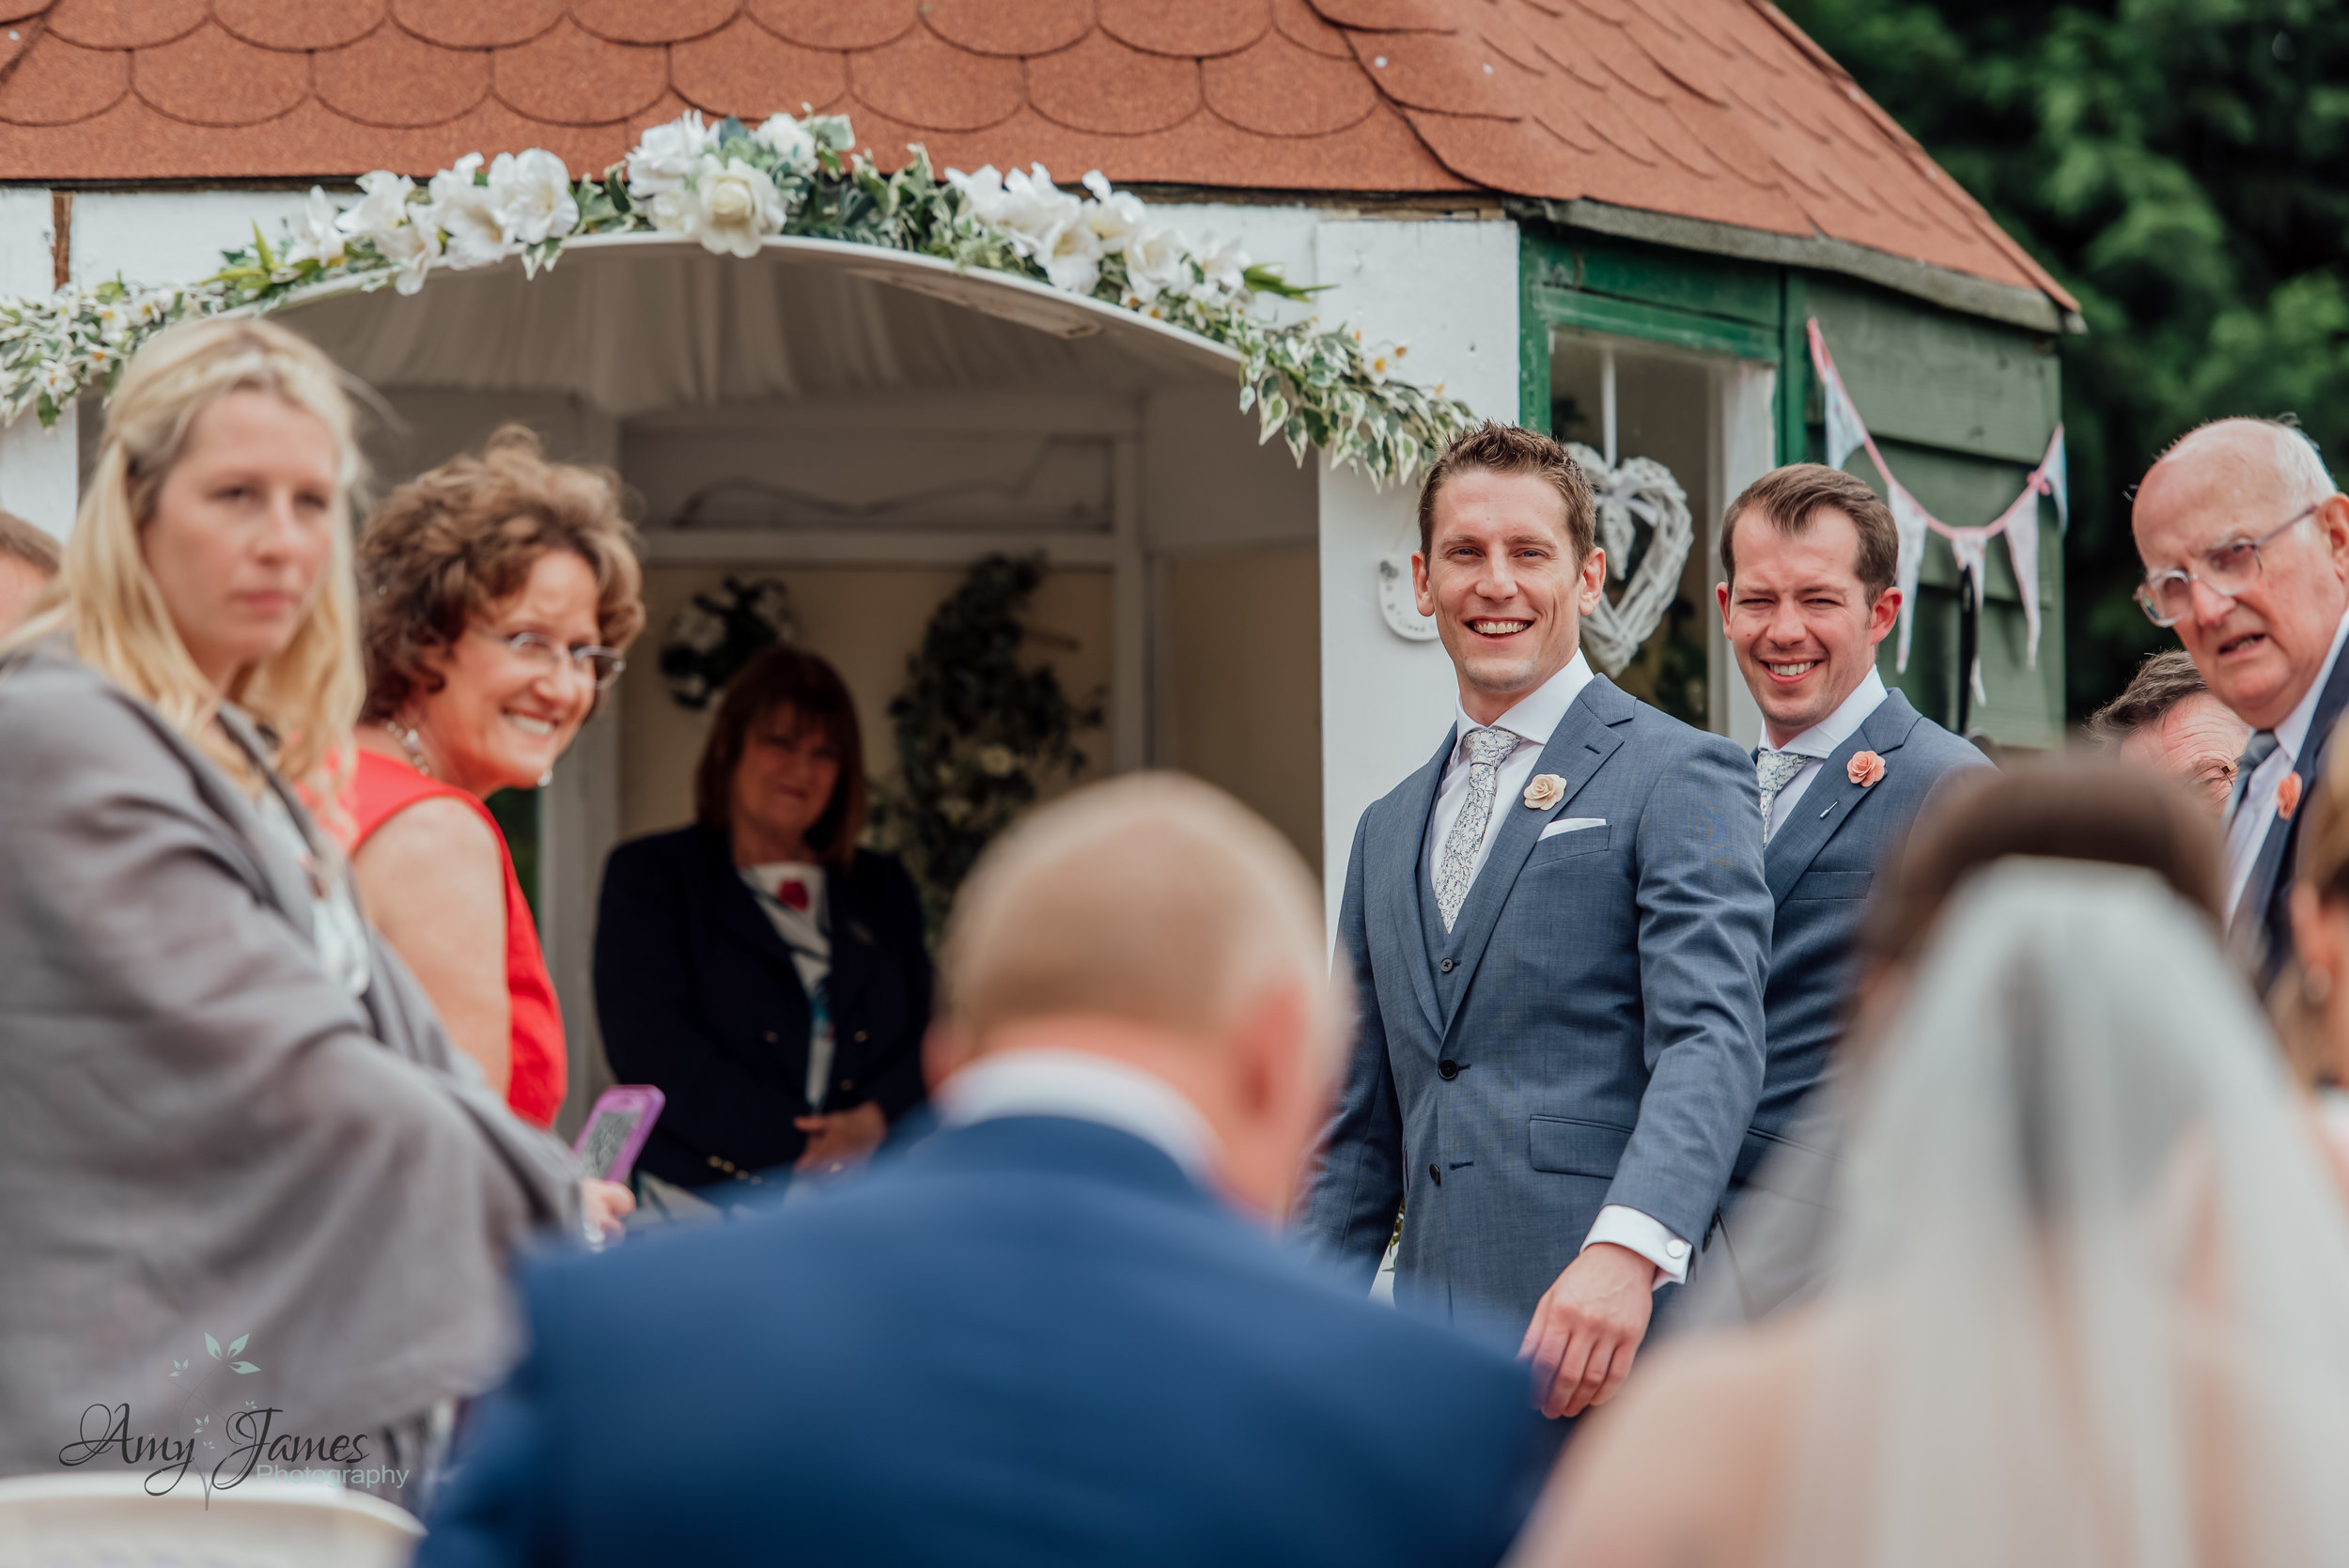 Outdoor garden wedding ceremony at Taplins Place - Amy James Photography